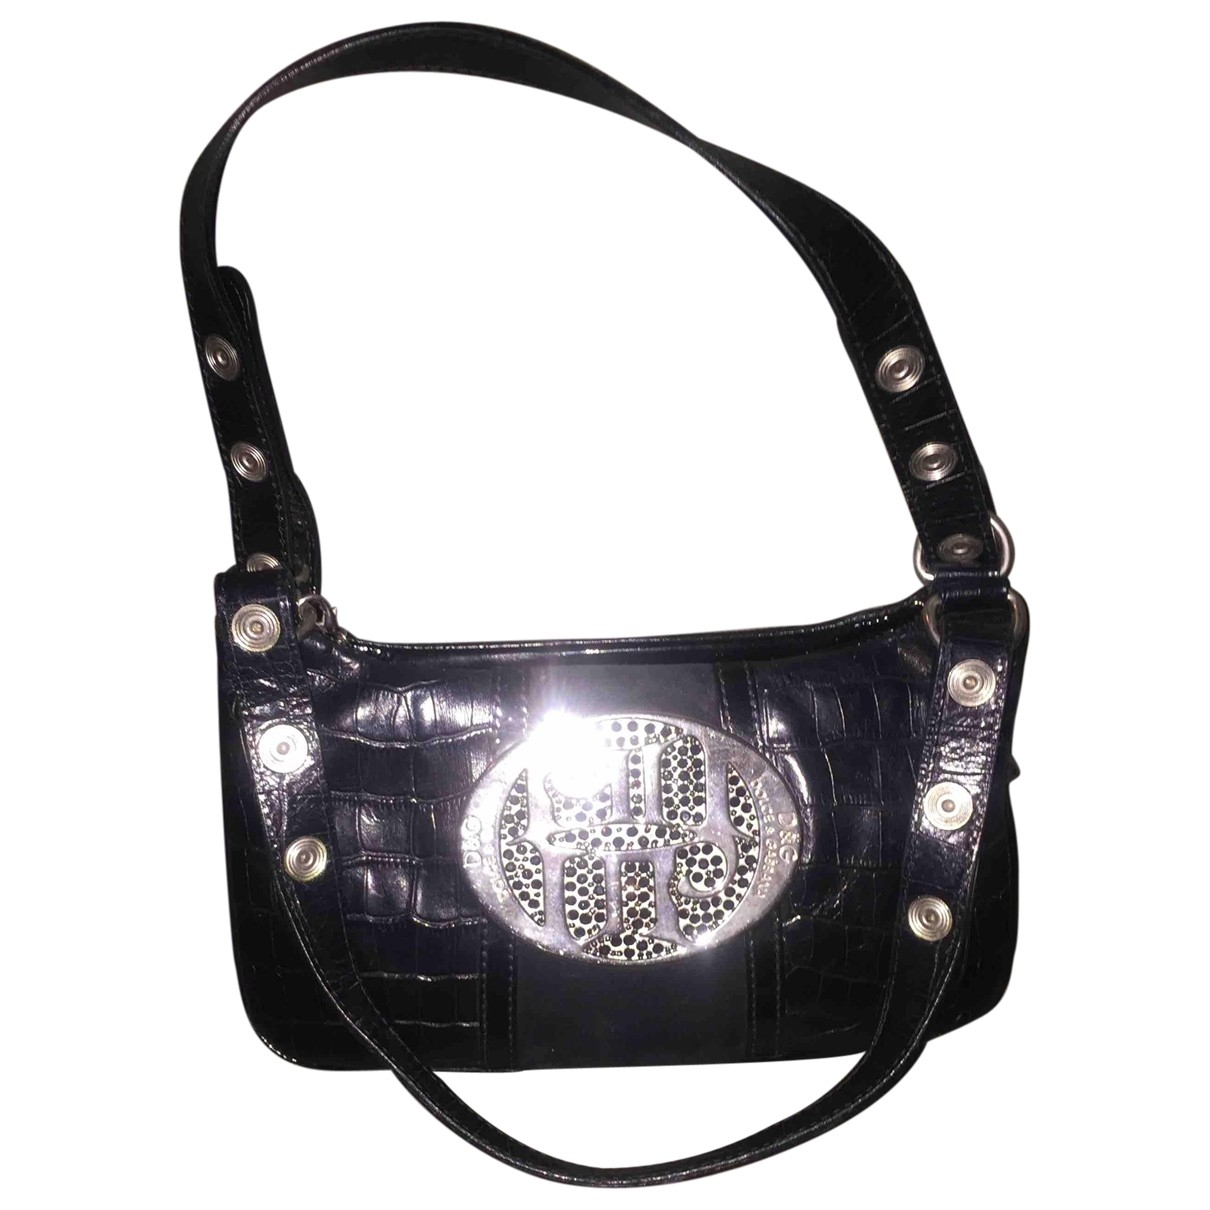 D&g \N Black Patent leather Clutch bag for Women \N